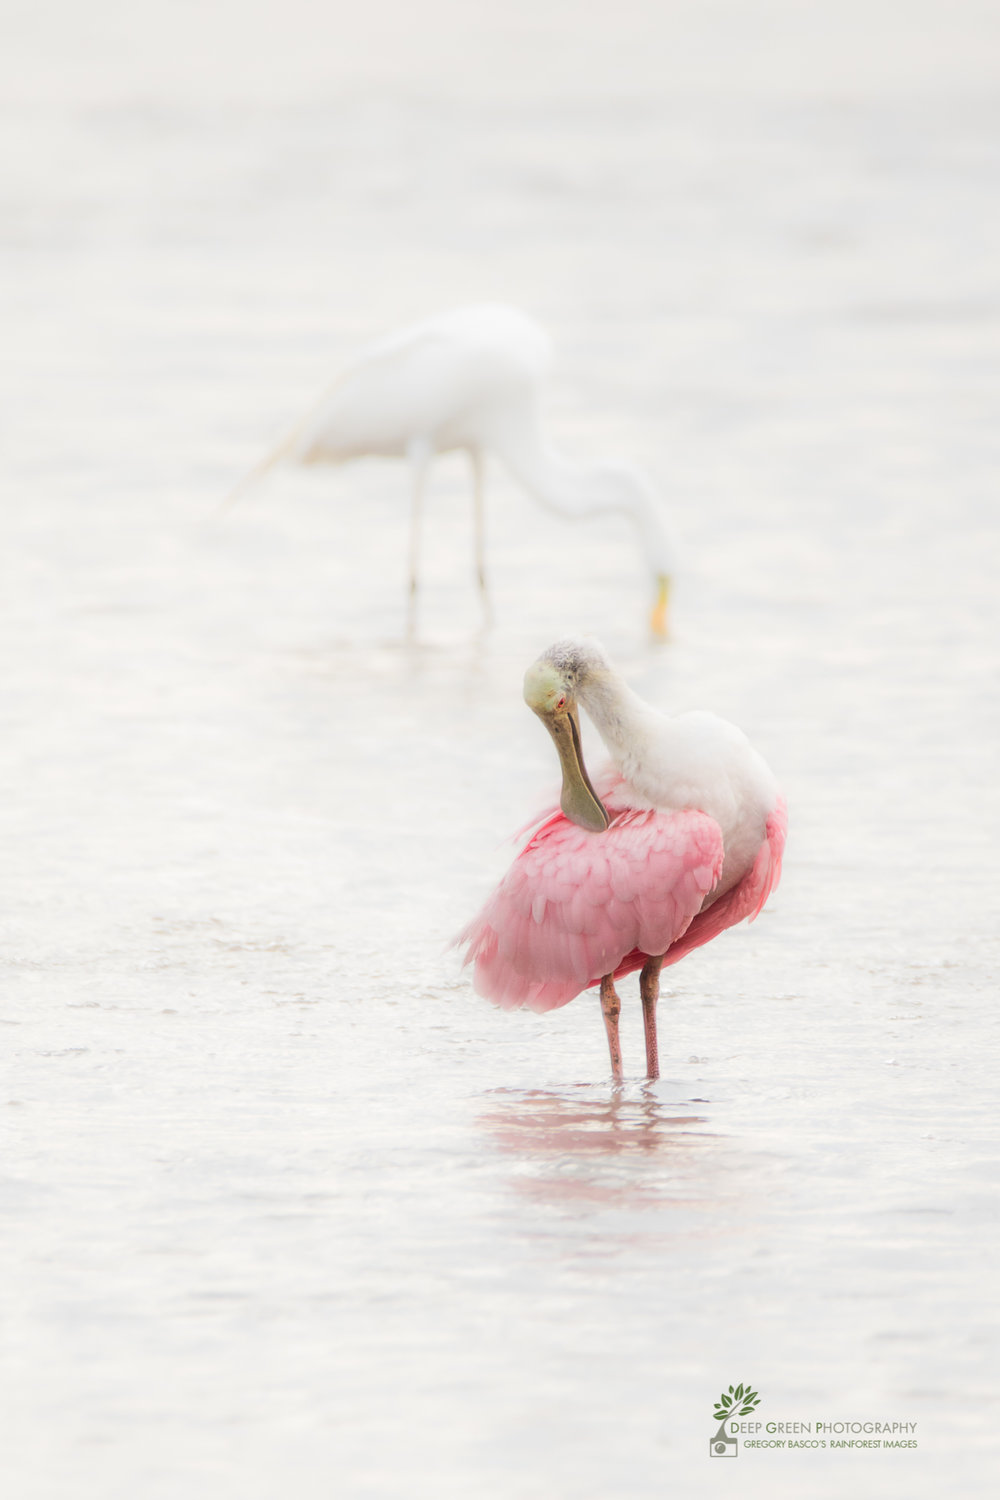 A roseate spoonbill preens while a great egret fishes on Costa Rica's Tarcoles River on a rainy day.